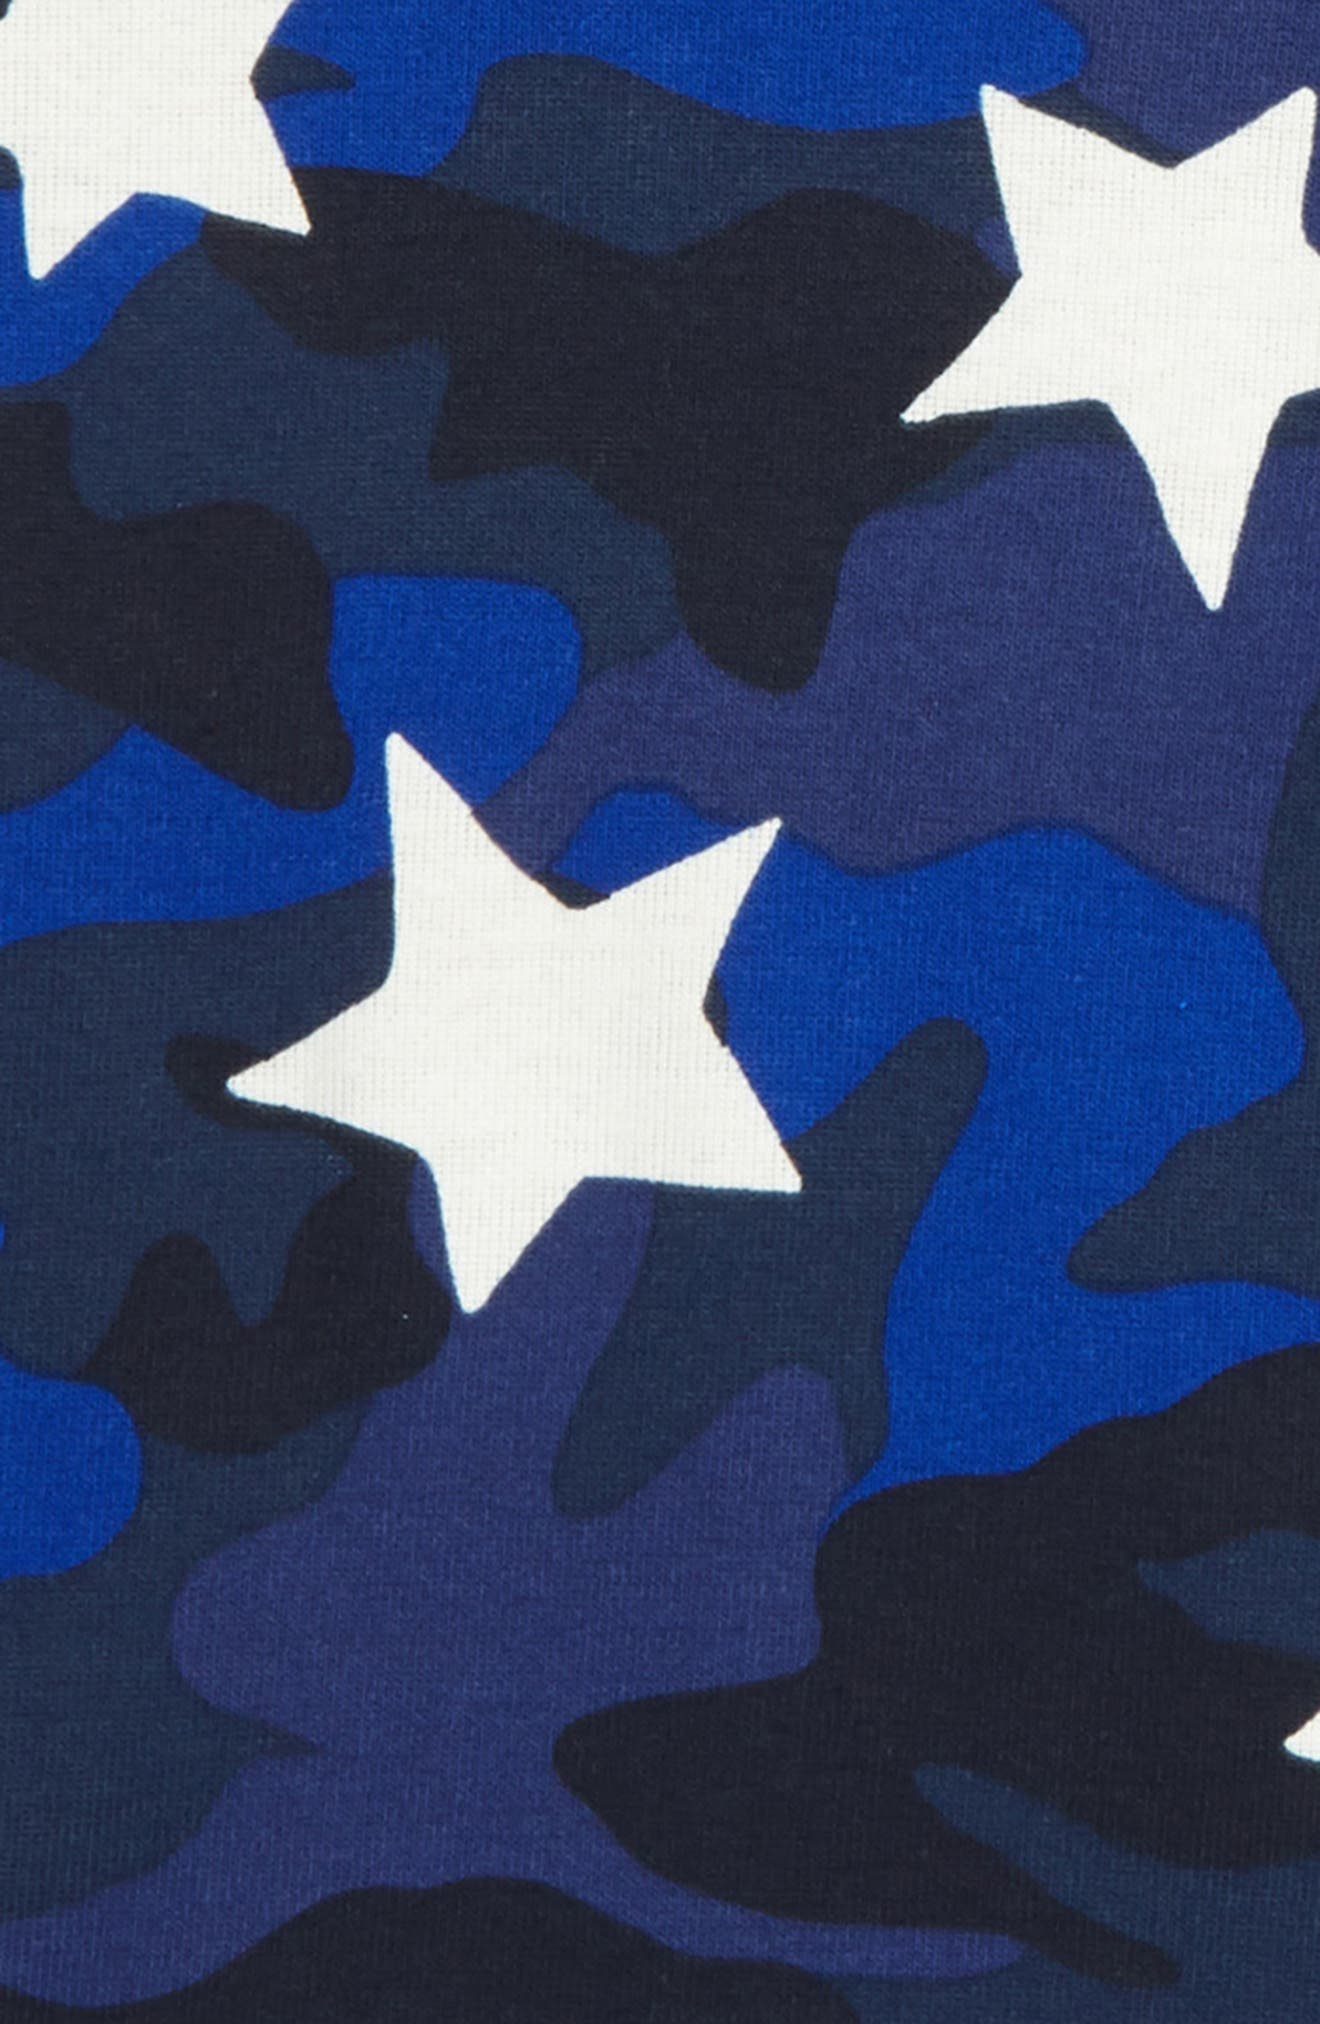 Glow-in-the-Dark Fitted Two-Piece Pajamas,                             Alternate thumbnail 2, color,                             NAVY CAMOUFLAGE STAR